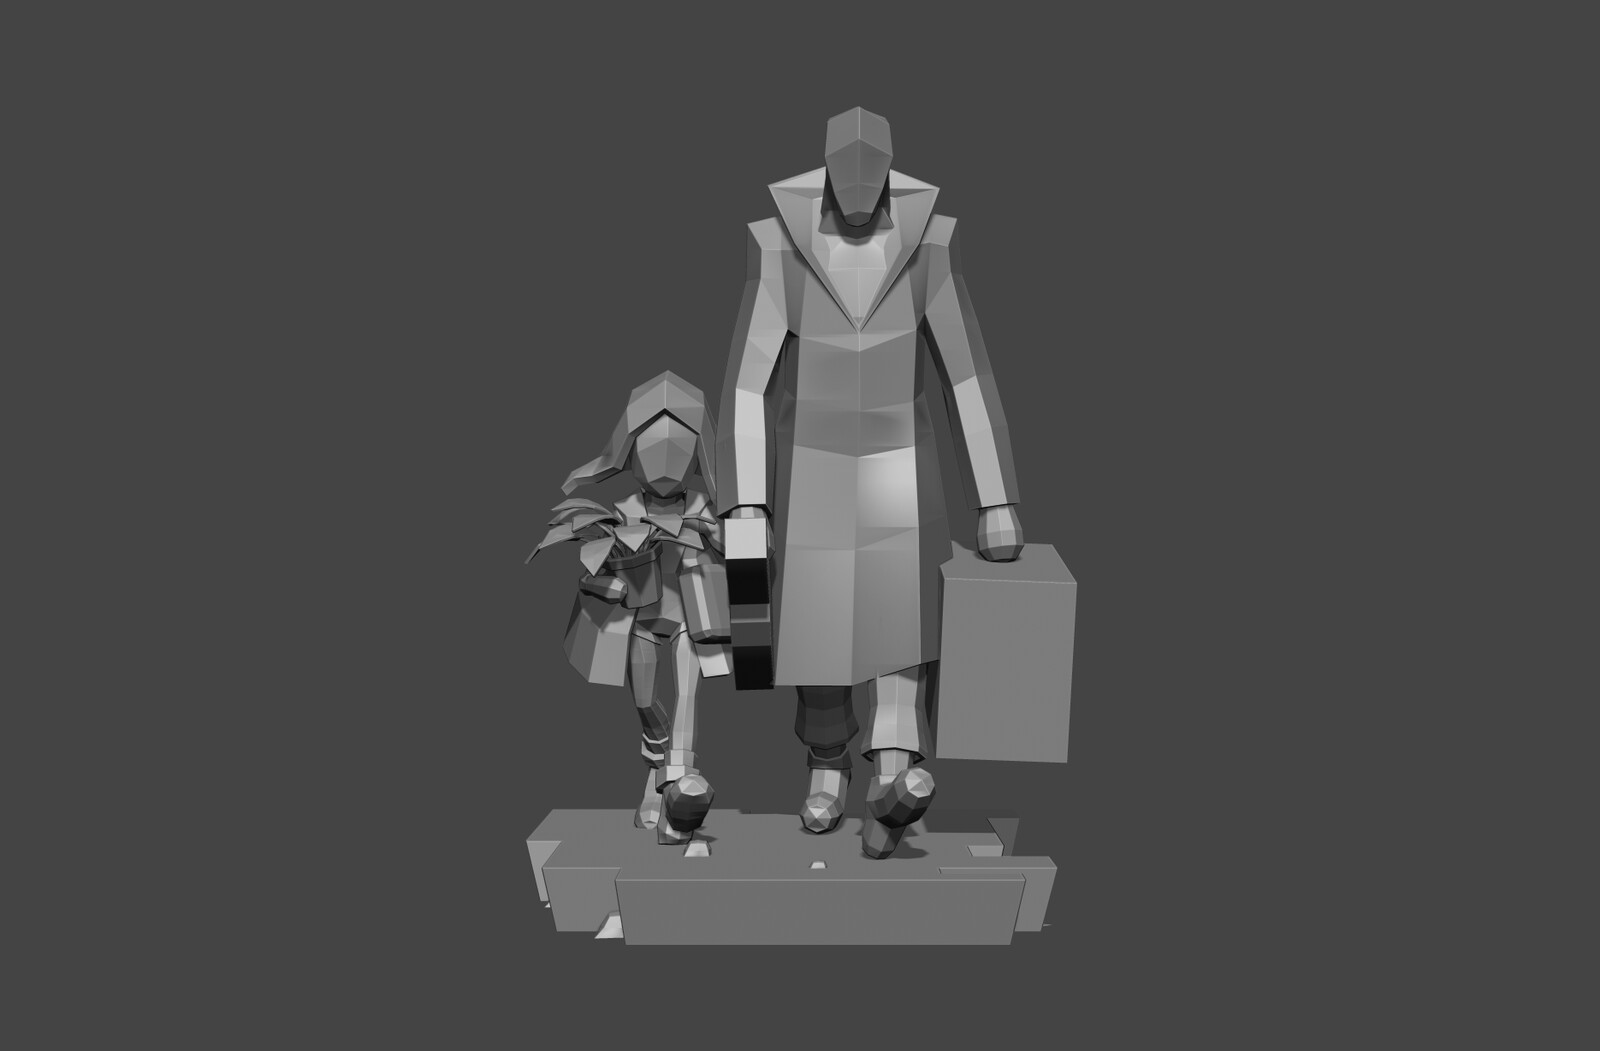 Fist blockout for the statue with almost realistic proportions